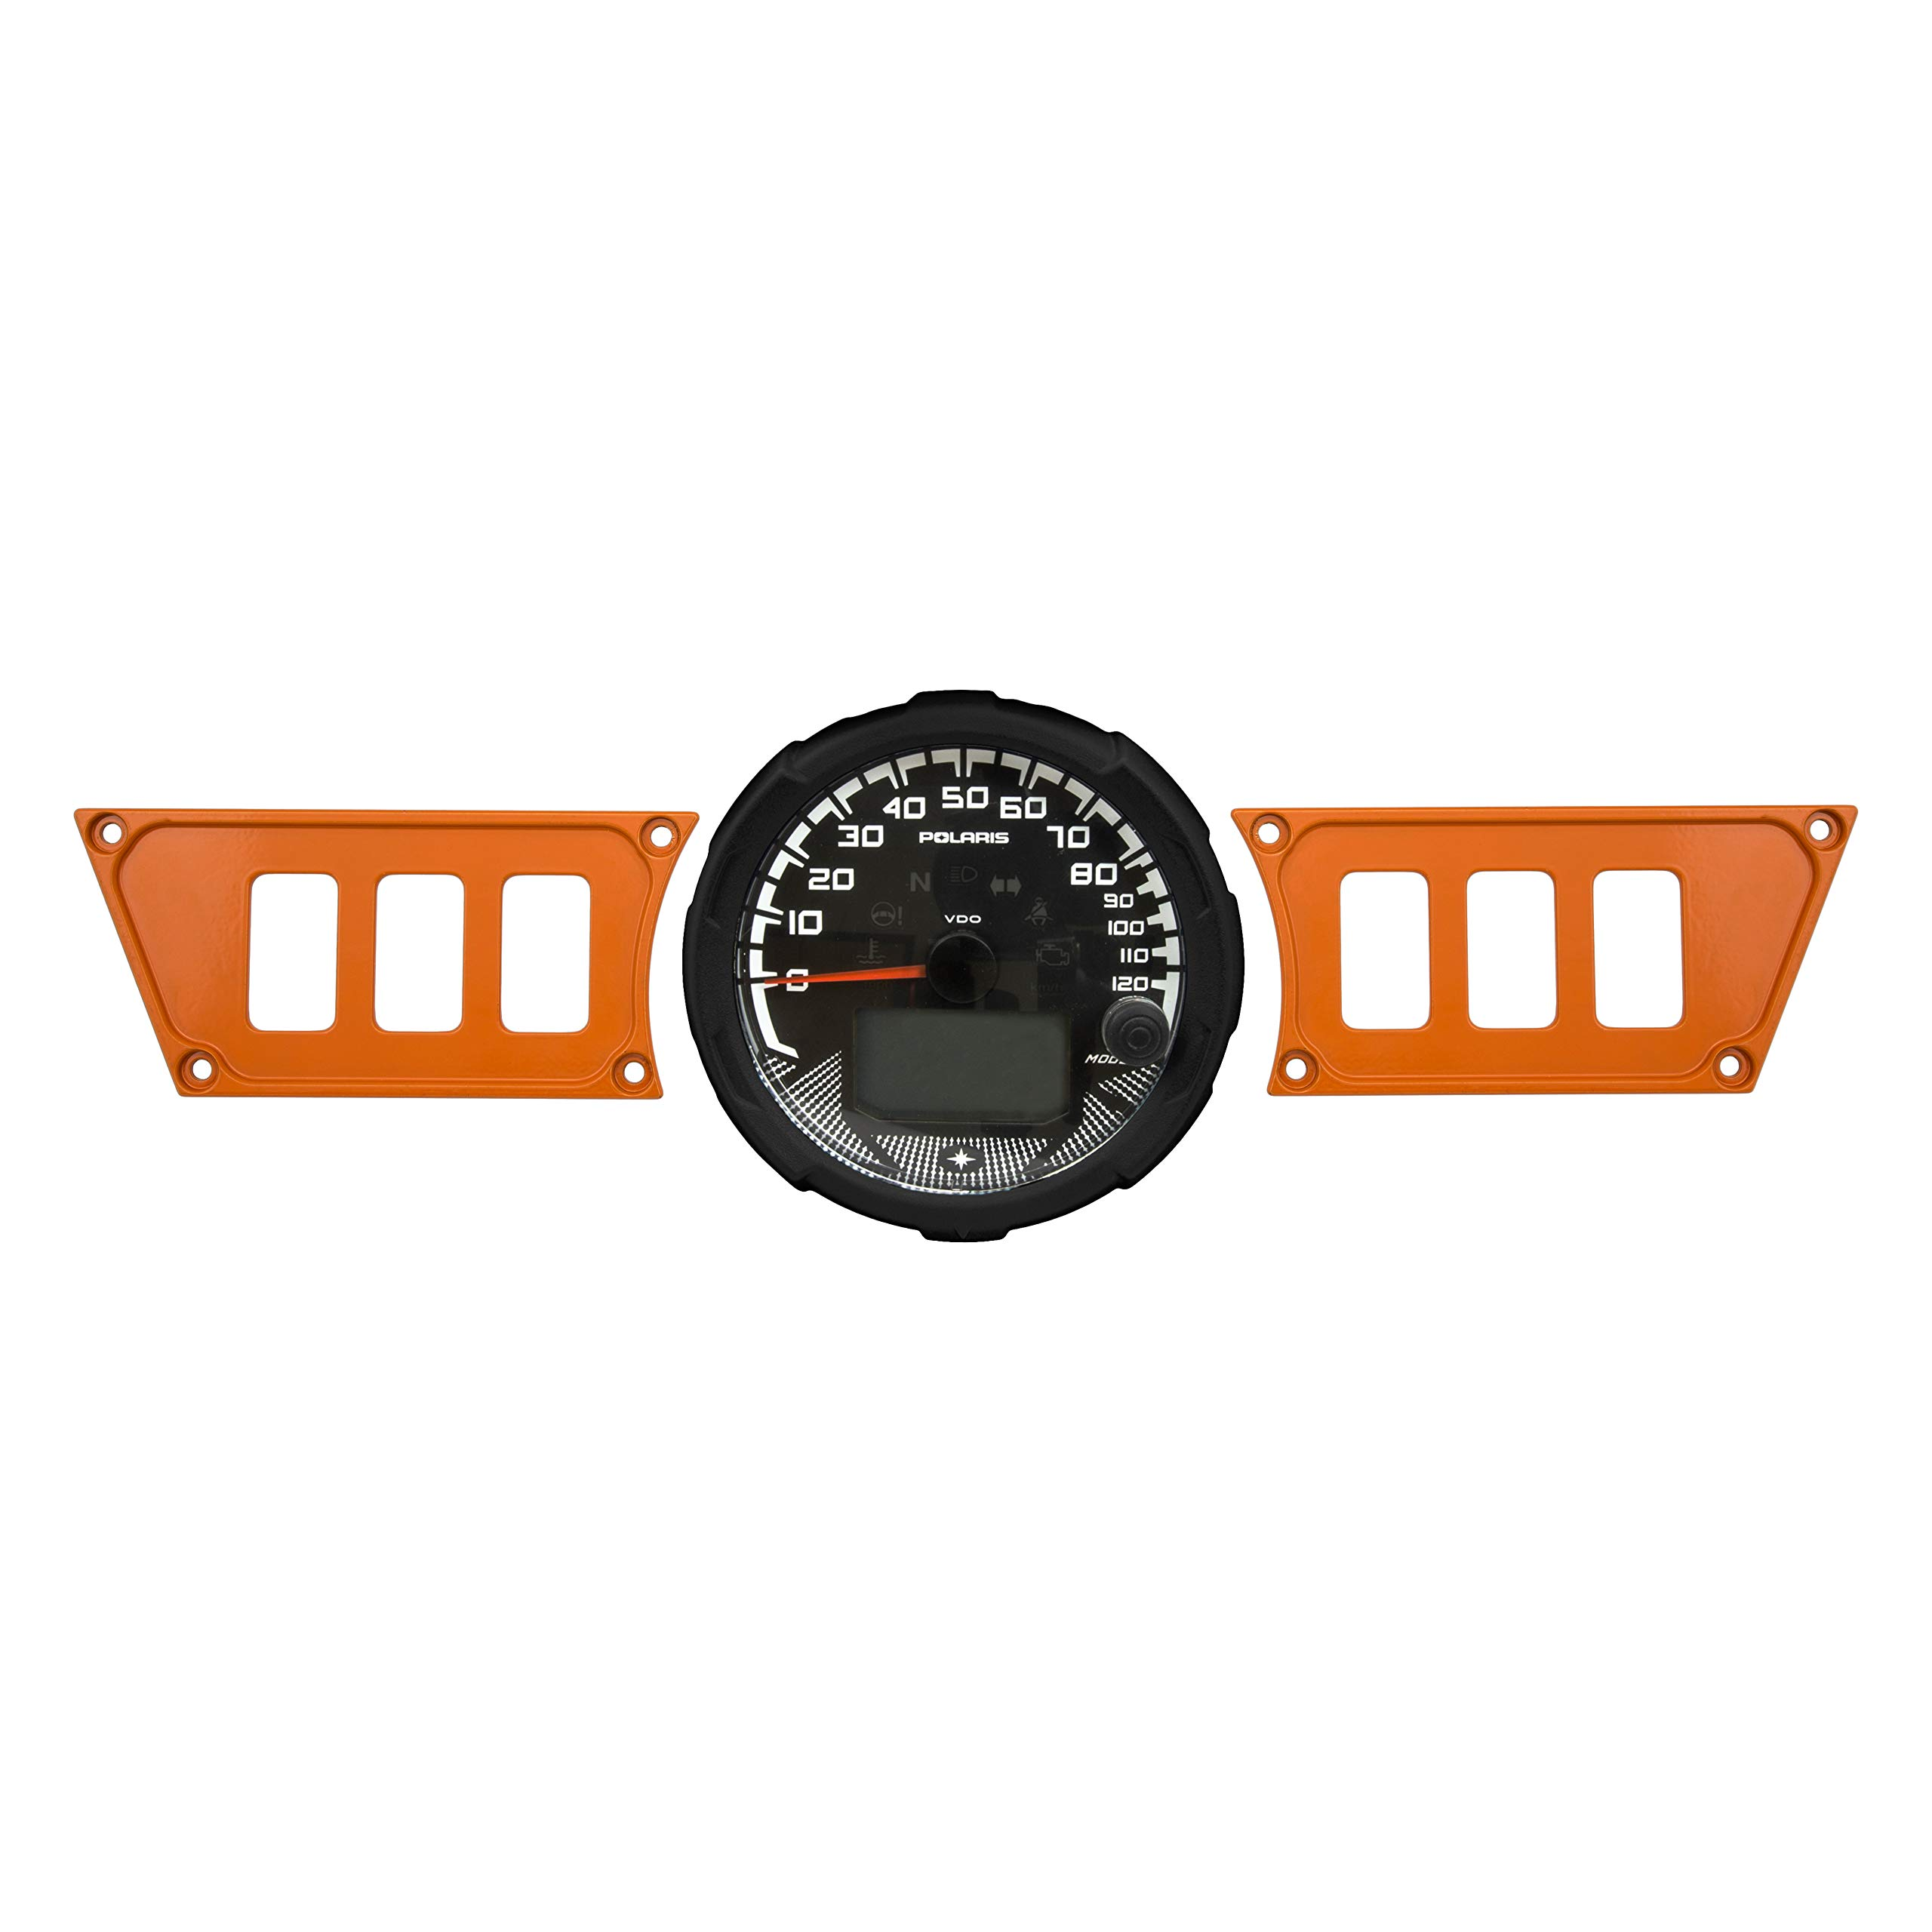 STVMotorsports Orange Aluminum Dash Panel for 2015-2019 Polaris RZR 900 RZR S 900 - Made 100% in USA (no switches Included) by STVMotorsports